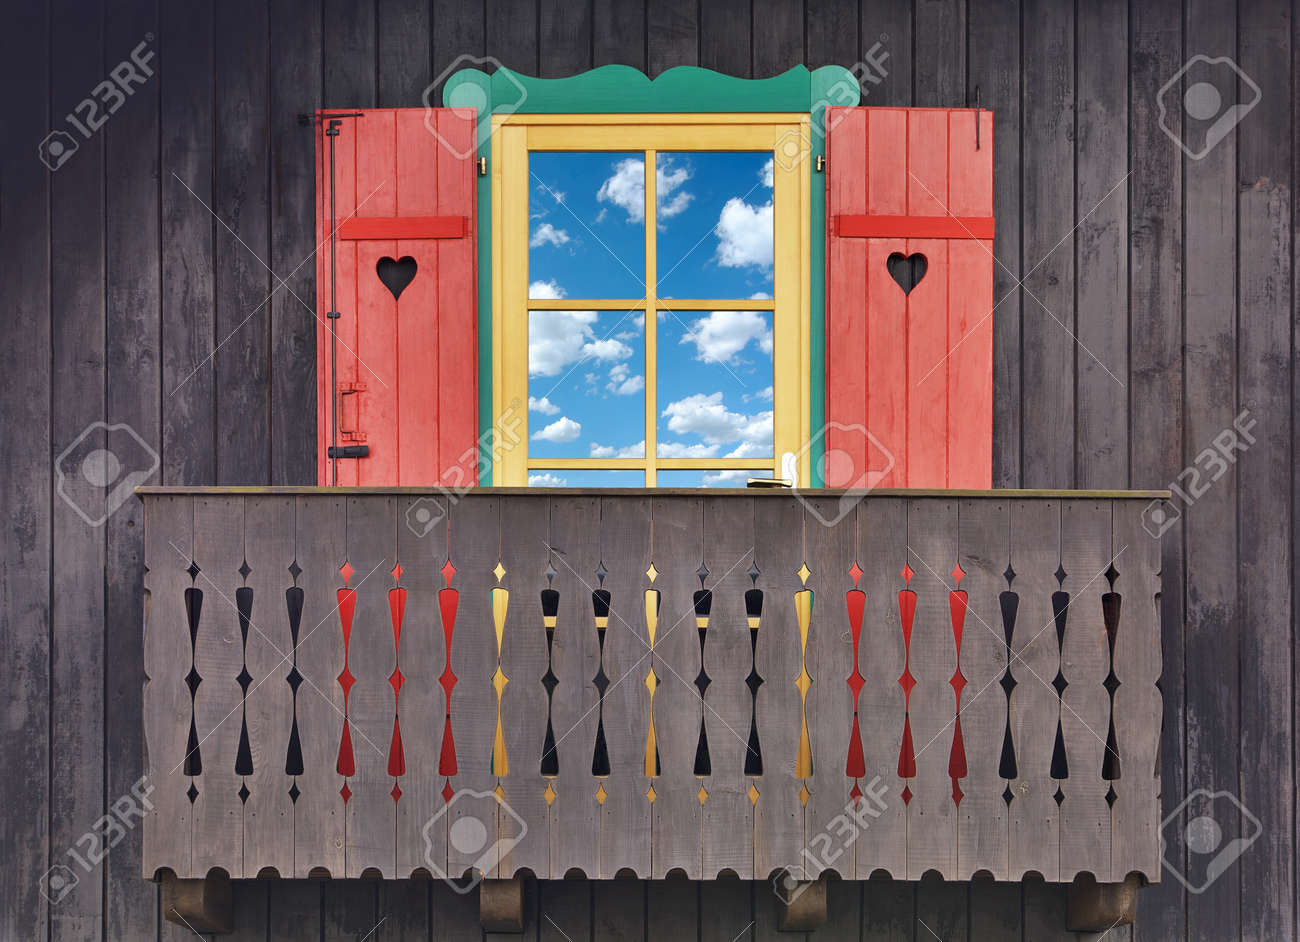 Wooden chalet balcony from Hansel and Gretel Stock Photo - 12905982